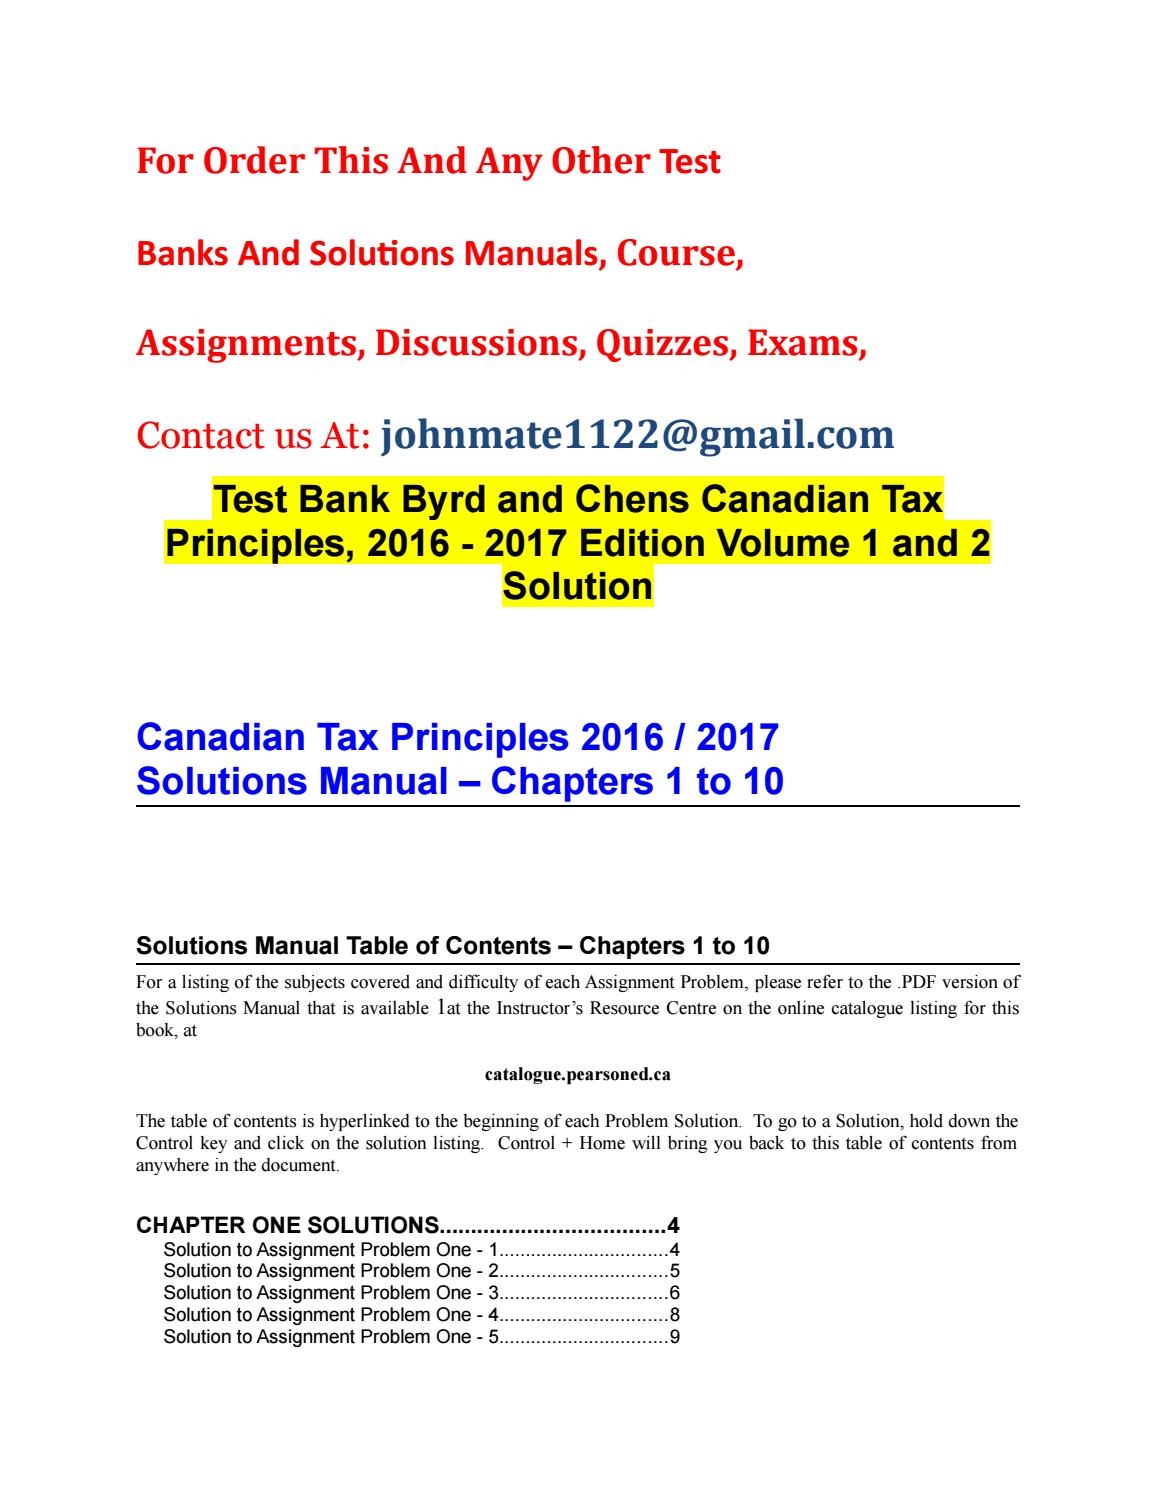 Test bank byrd and chens canadian tax principles, 2016 2017 edition volume  1 and 2 solution by yandex325 - issuu